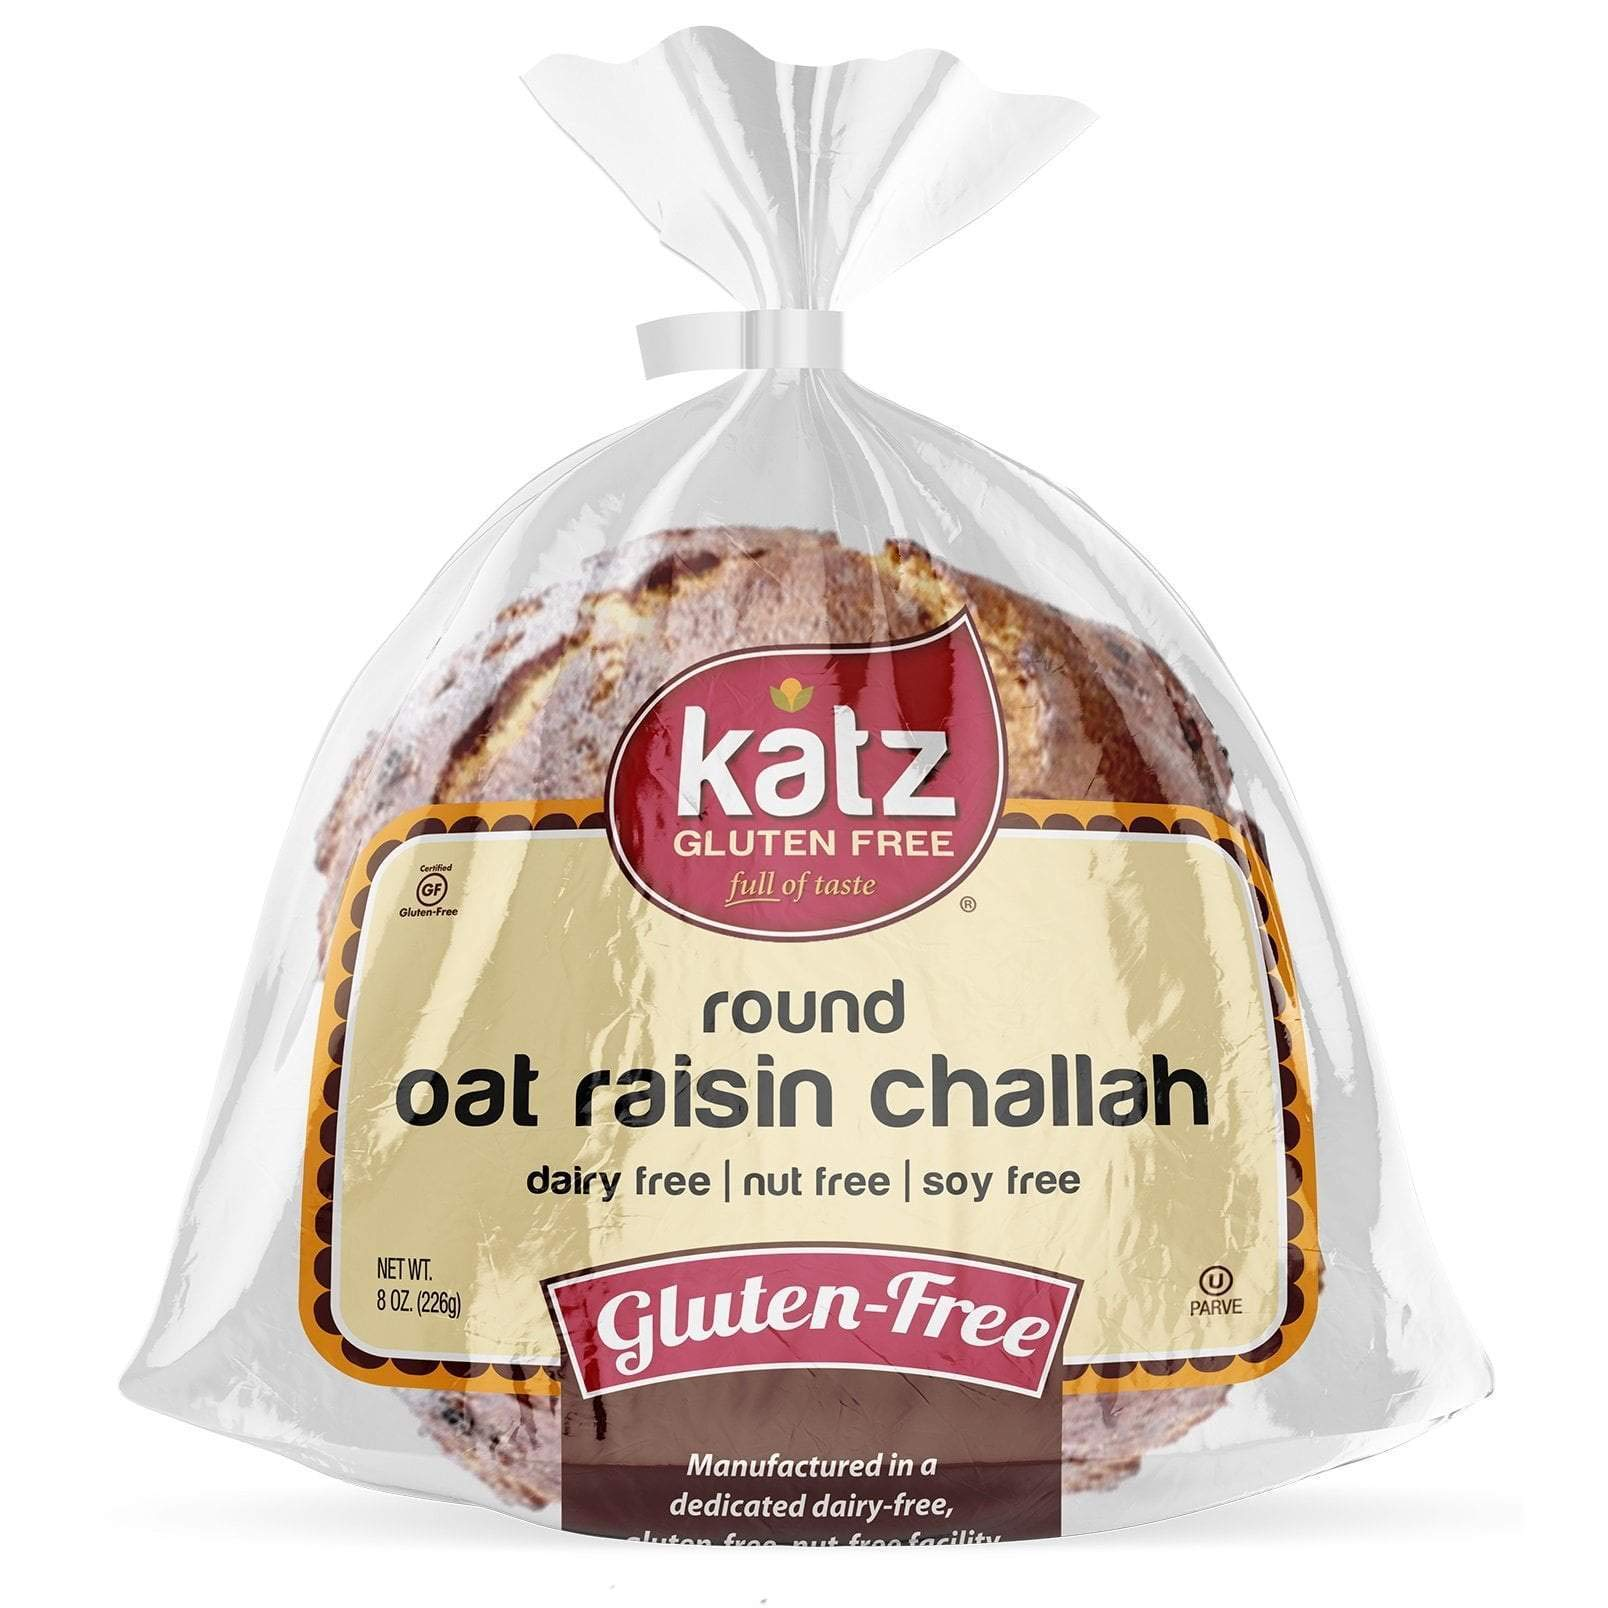 Katz Gluten Free Round Oat Raisin Challah | Dairy, Nut, Soy and Gluten Free | Kosher (6 Packs of 1 Challah, 8 Ounce Each) by Katz Gluten Free